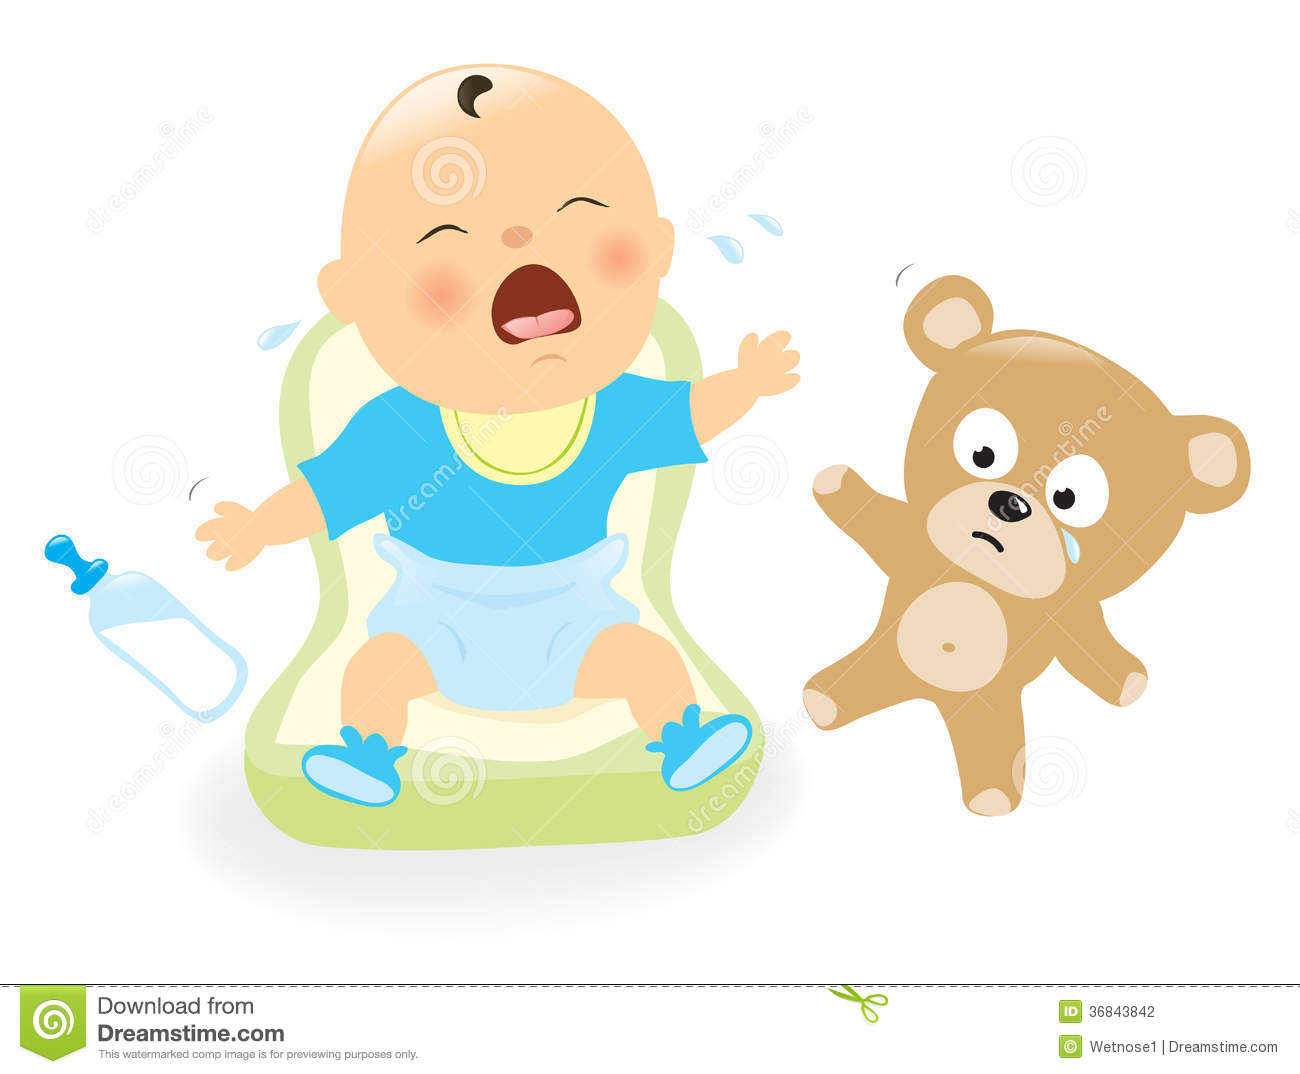 Illustration Of A Baby Crying And Sad Teddy Bear